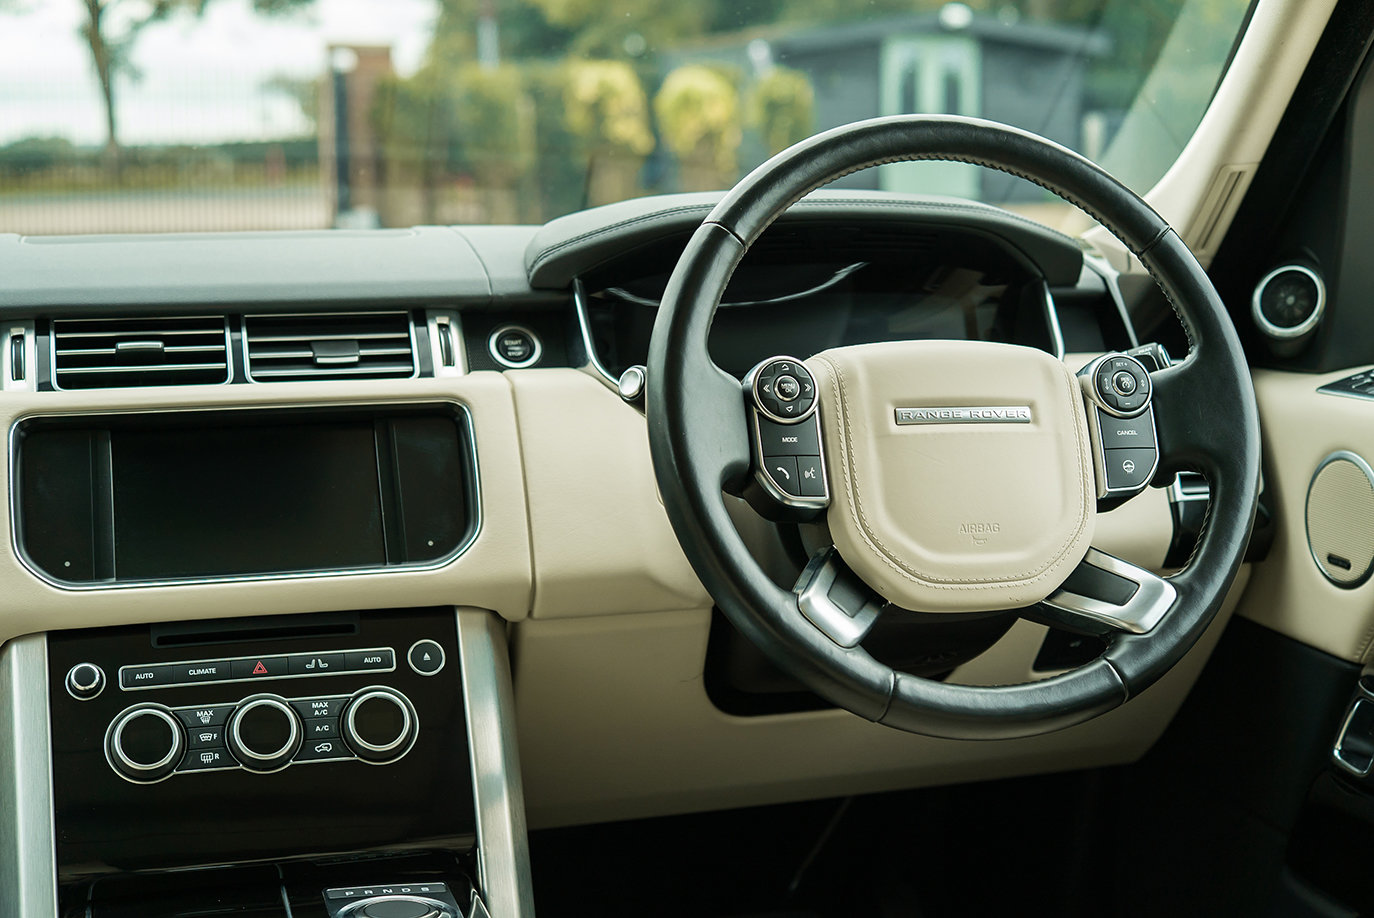 2016 Range Rover 3.0 TD Vogue SE Auto For Sale (picture 4 of 6)